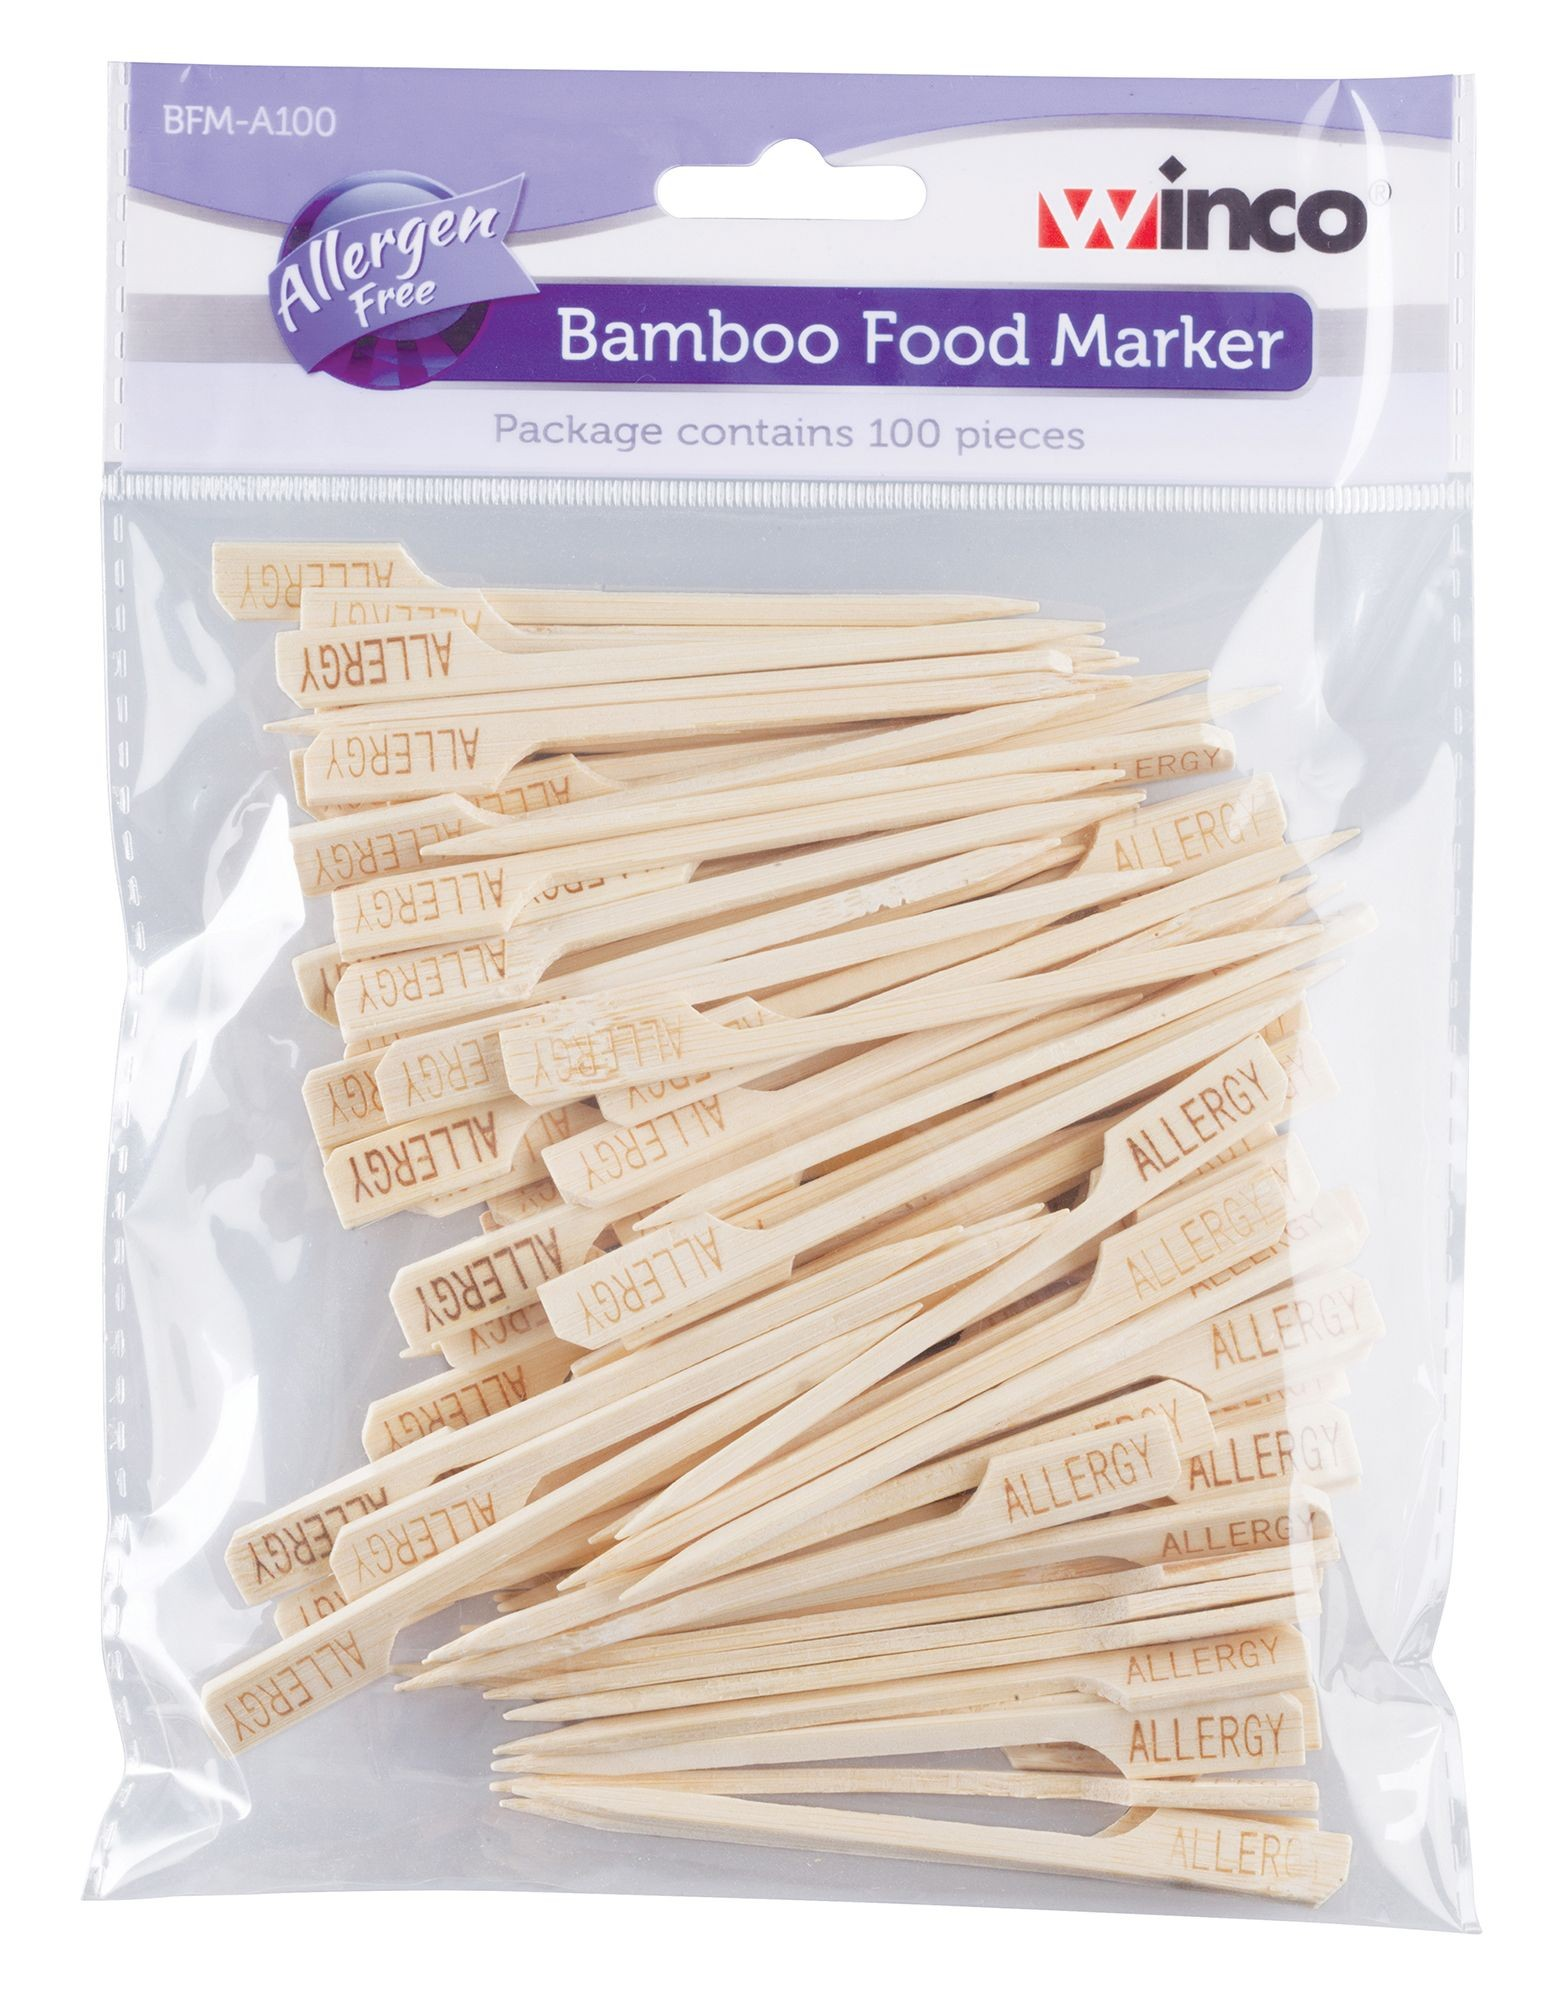 Winco BFM-A100 Bamboo Allergen Free Food Markers, 100/pack